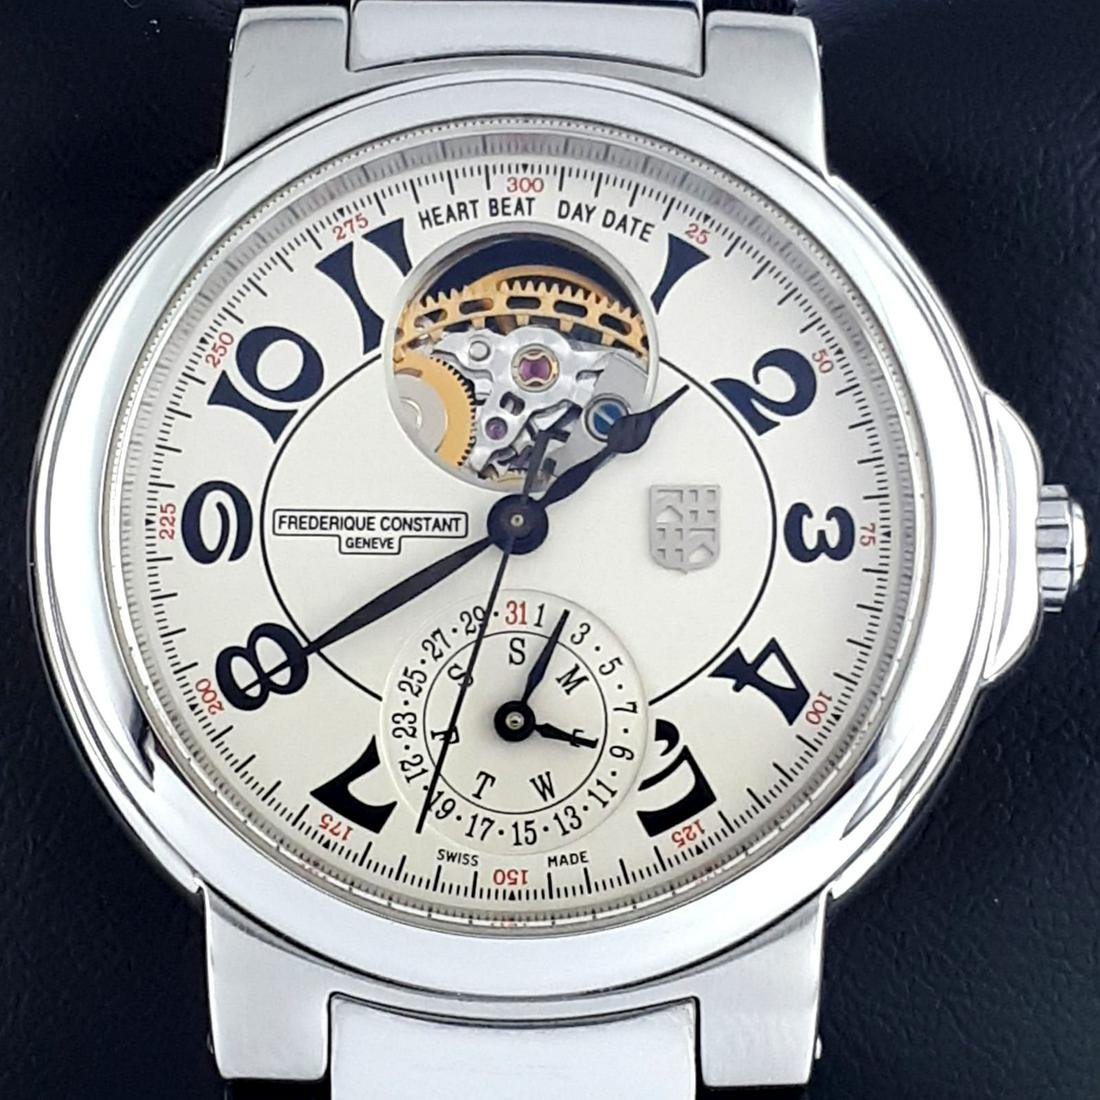 Frédérique Constant - Highlife Heartbeat Day/Date -